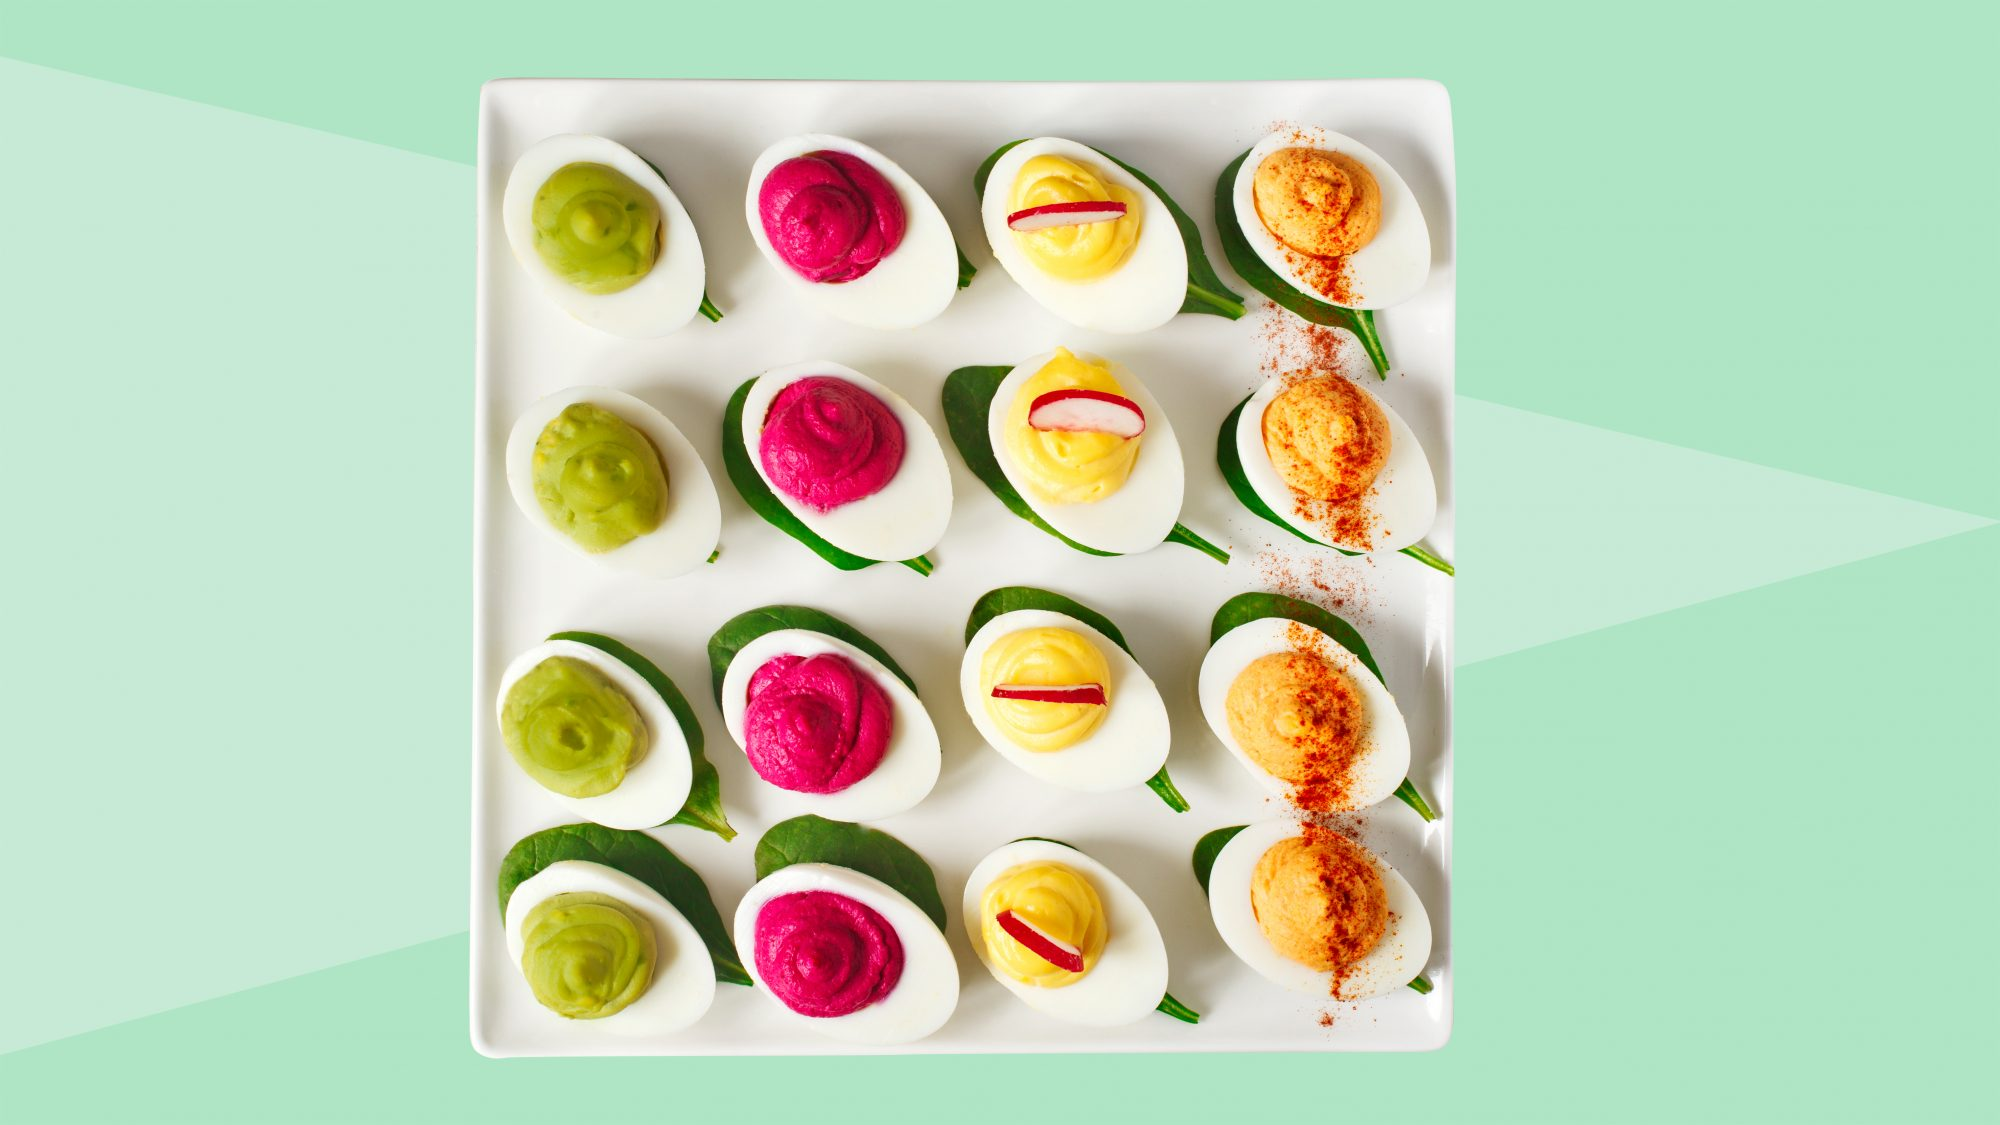 Don't Serve Deviled Eggs Without Trying One of These Delicious, Easy Upgrade Ideas